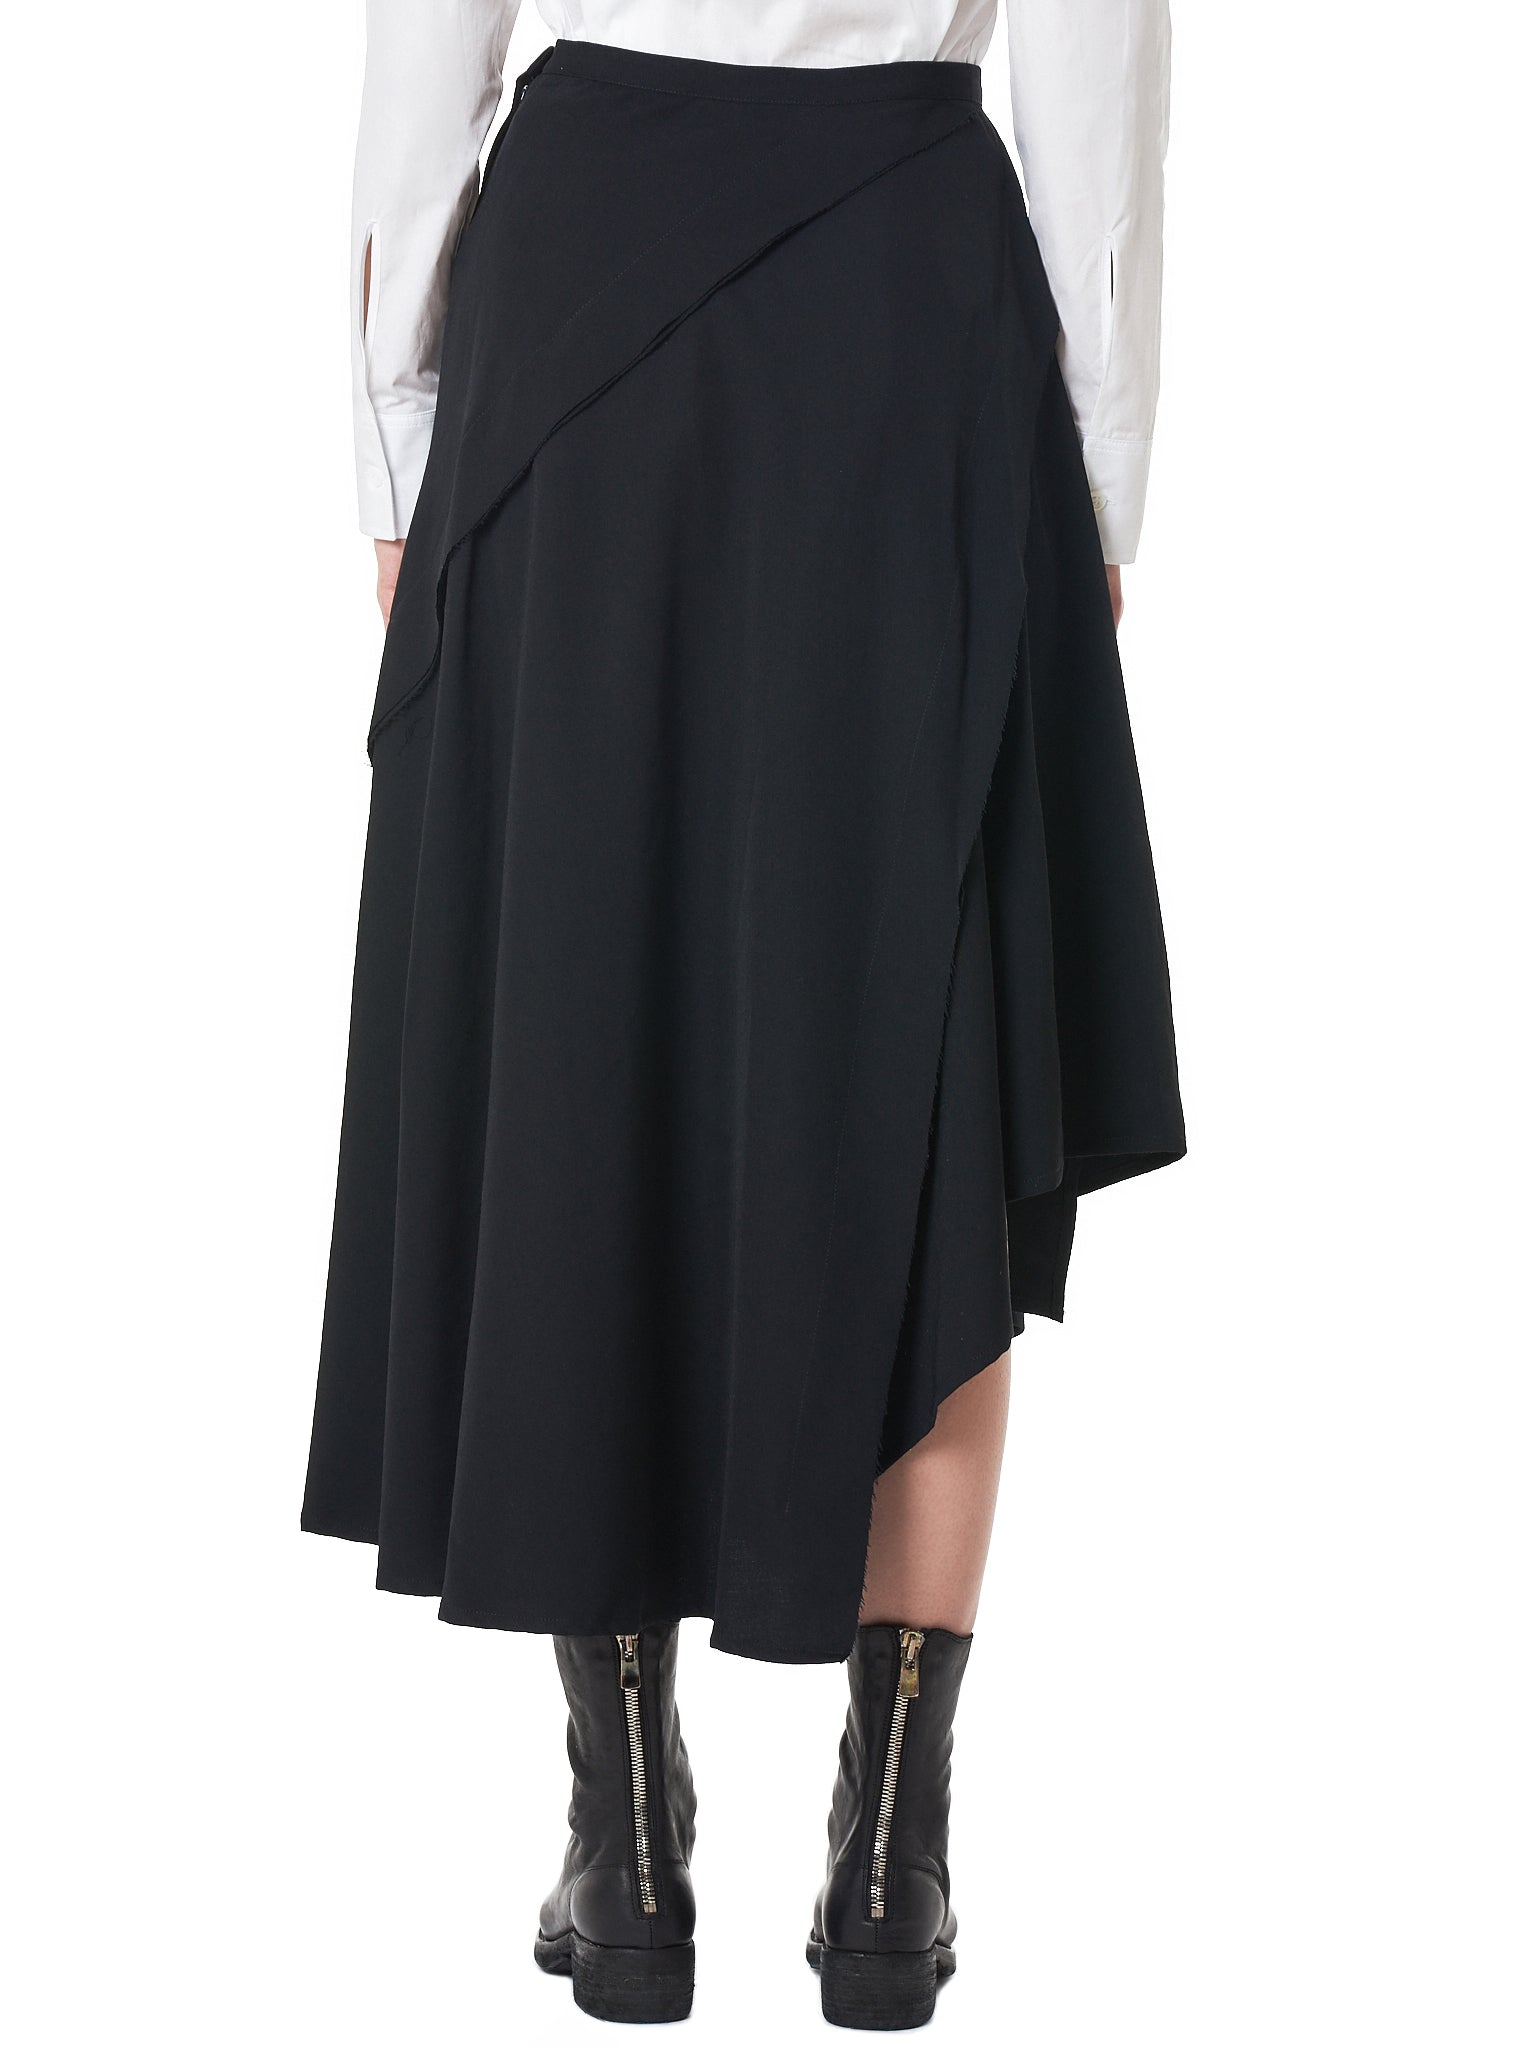 Canted Panel Skirt (FV-S11-100-BLACK)